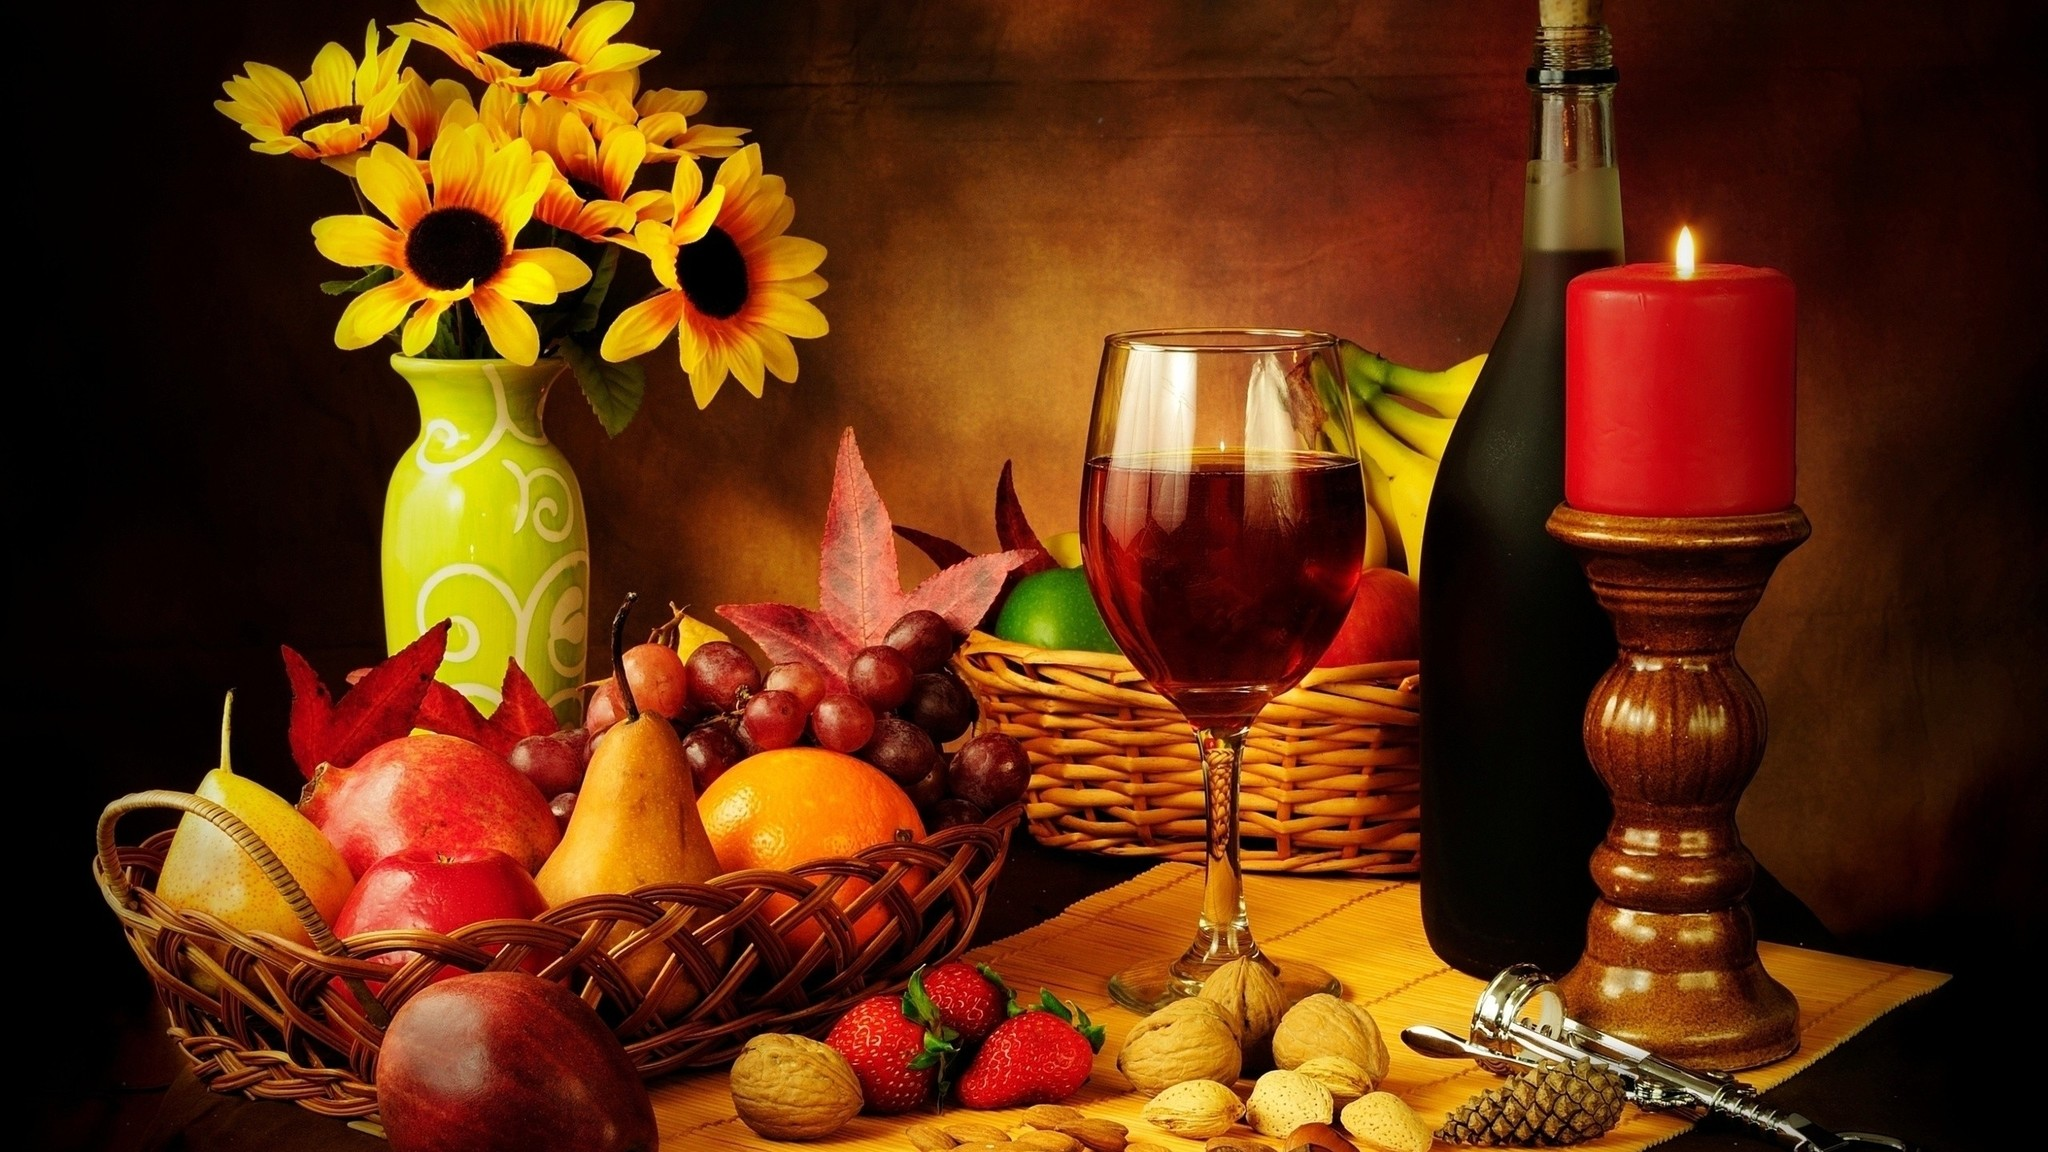 Res: 2048x1152, Description: Download Glass wine nuts strawberries candles red wine  wallpaper/desktop background in  HD & Widescreen resolution.